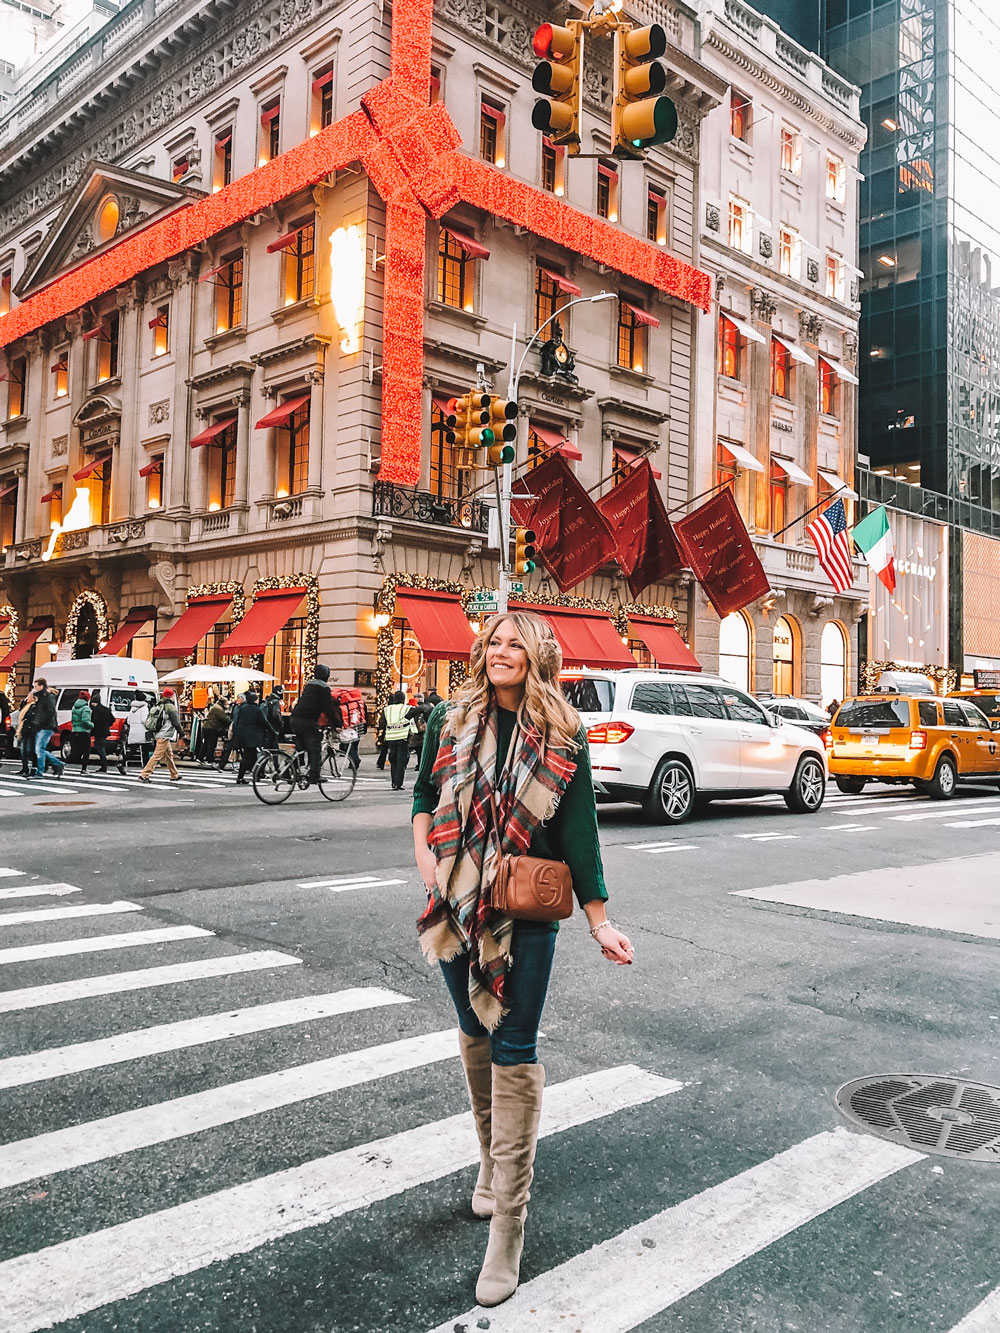 Most Instagrammable Spots in NYC: 5th Avenue Christmas Storefronts